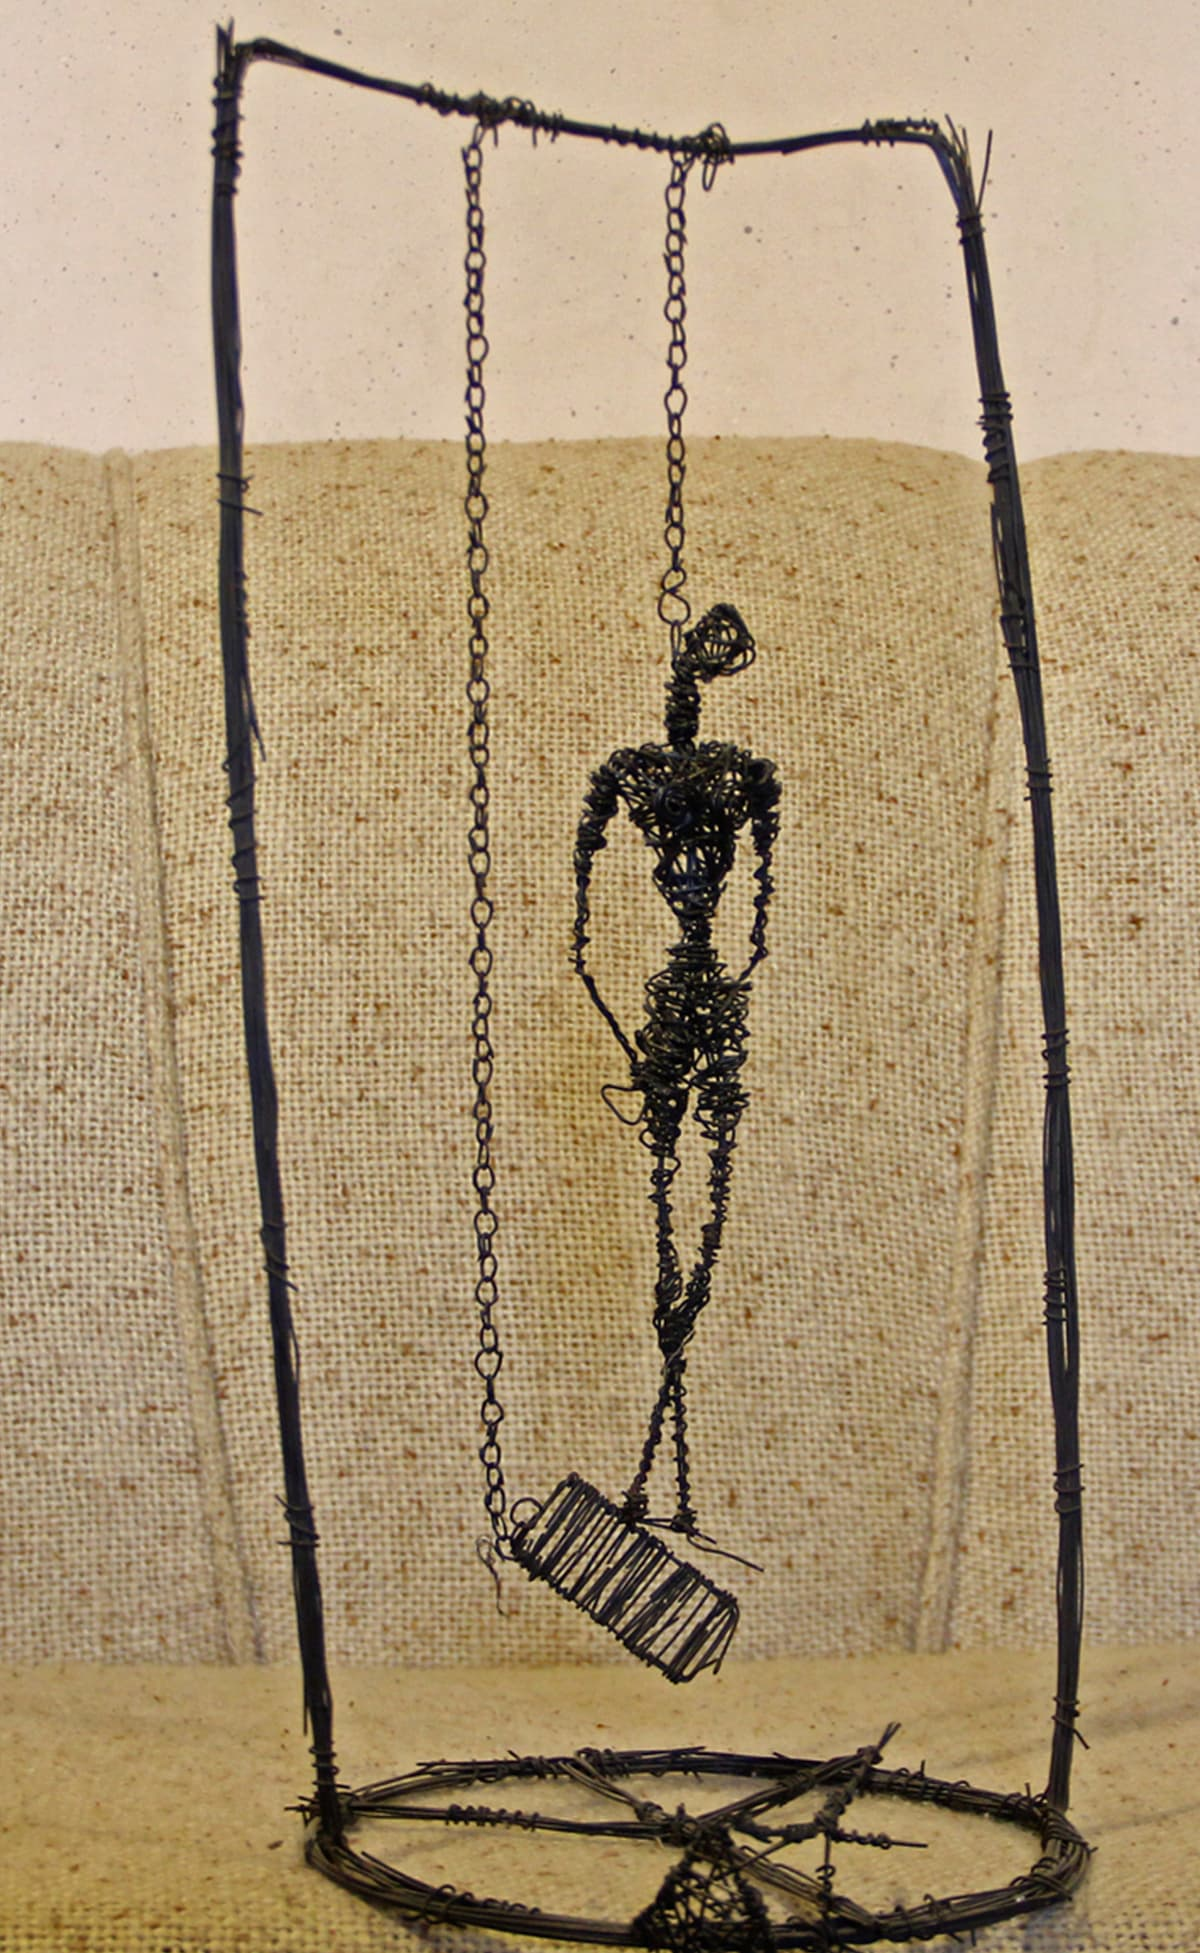 Sculpture of wire and chain by Mawara, an artist from Swat | Fazal Khaliq